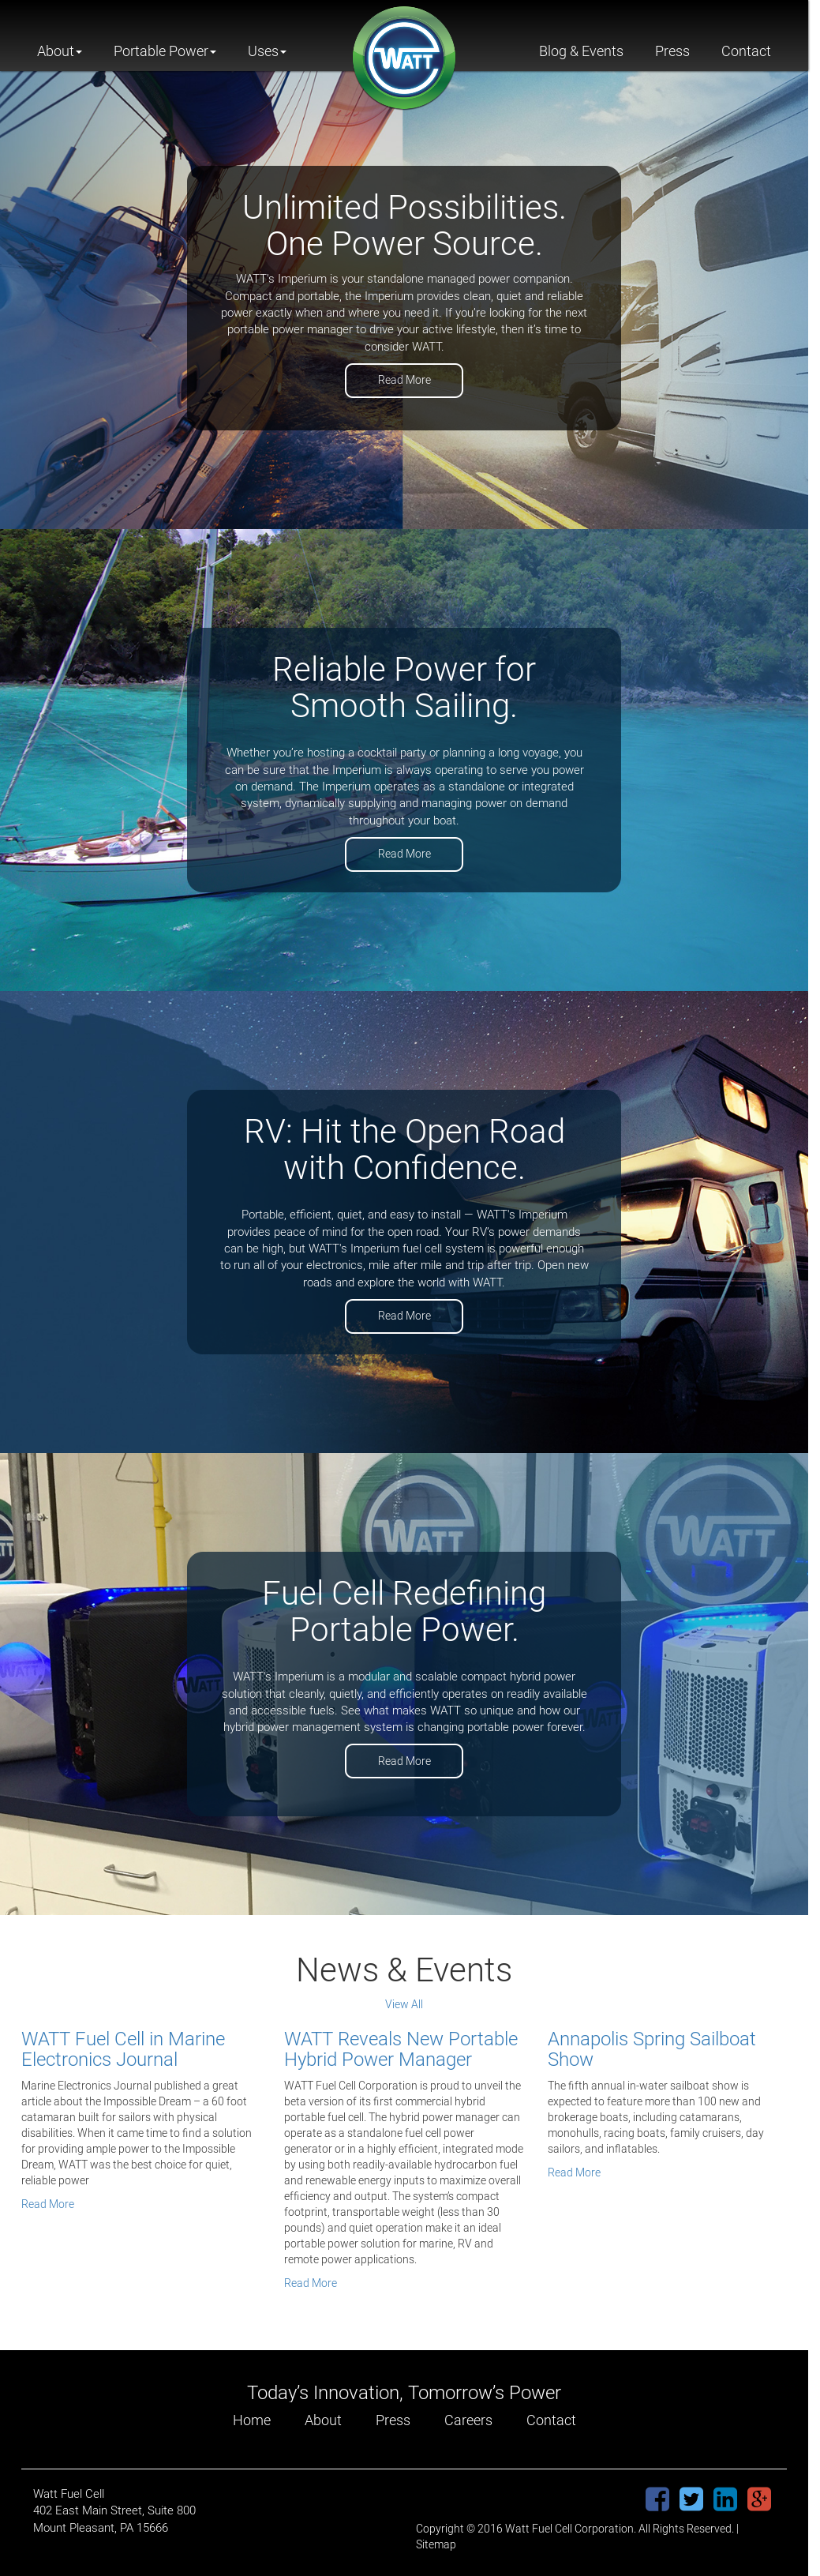 Wattfuelcell Competitors, Revenue and Employees - Owler Company Profile